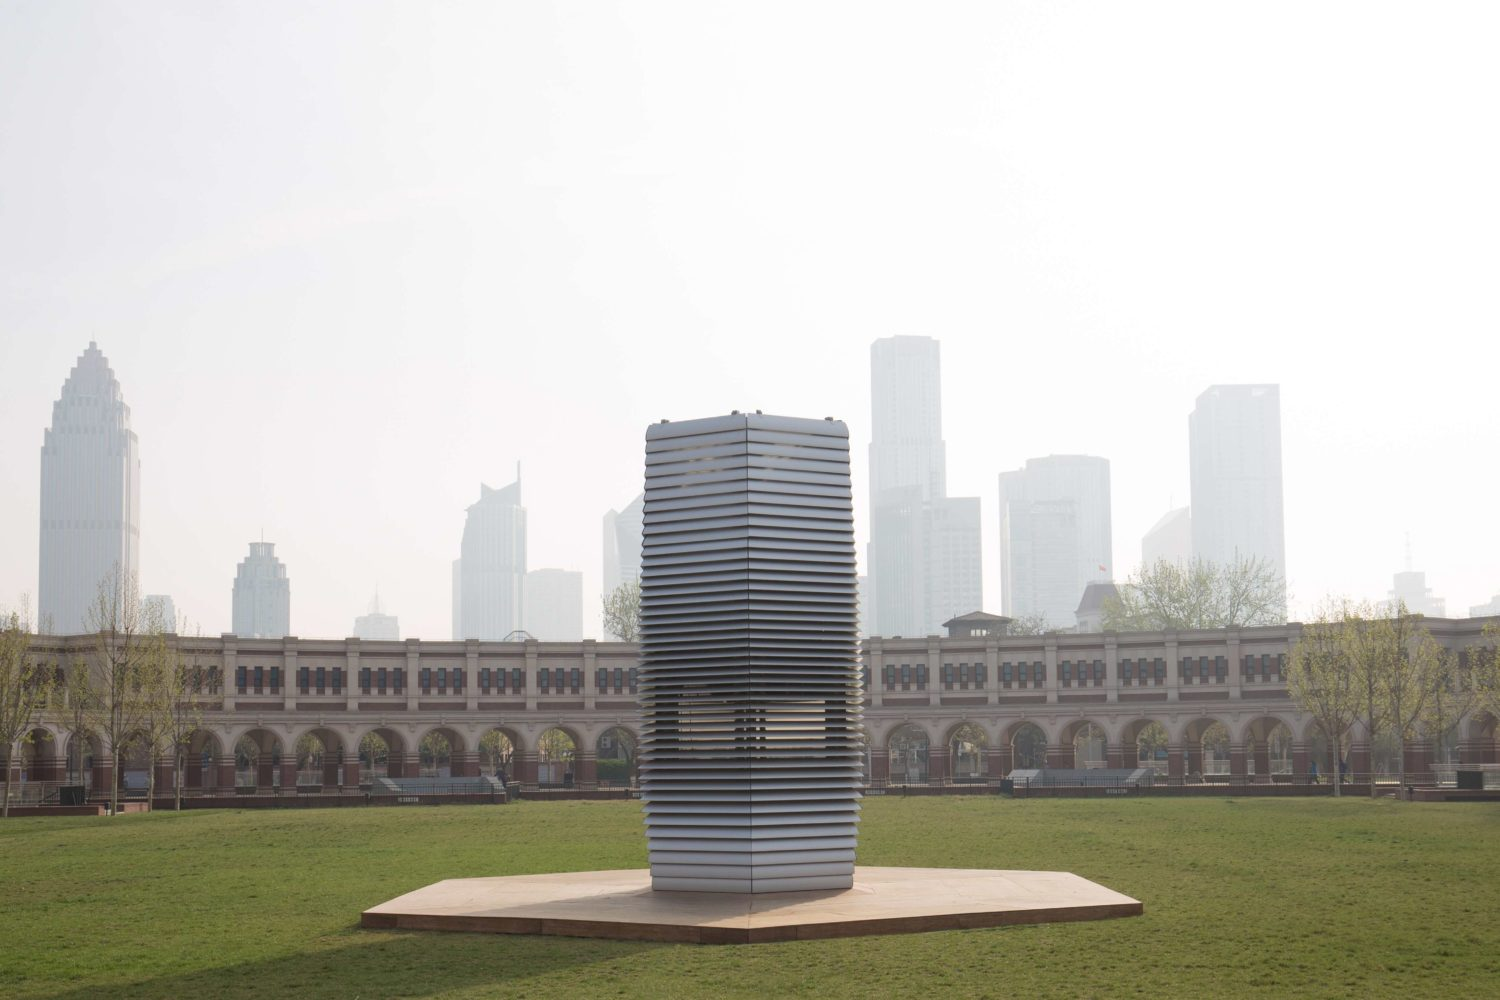 Smog Free Tower by Studio Roosegaarde, Tianji, Photo by Hasy